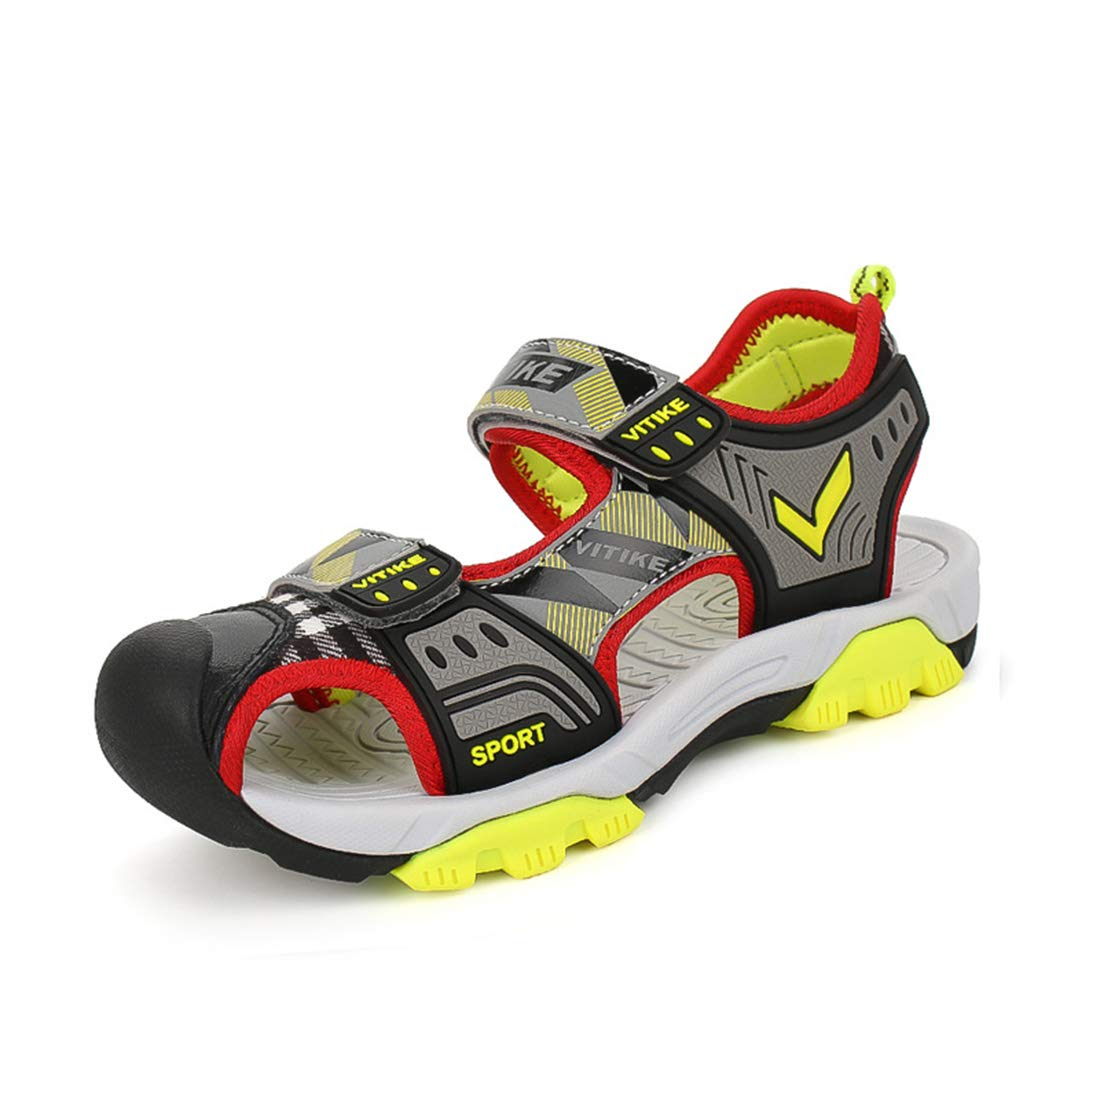 WETIKE Kids Sandals Summer Water Shoes Boys Outdoor Sneaker Sandals Sports Shoes Girls